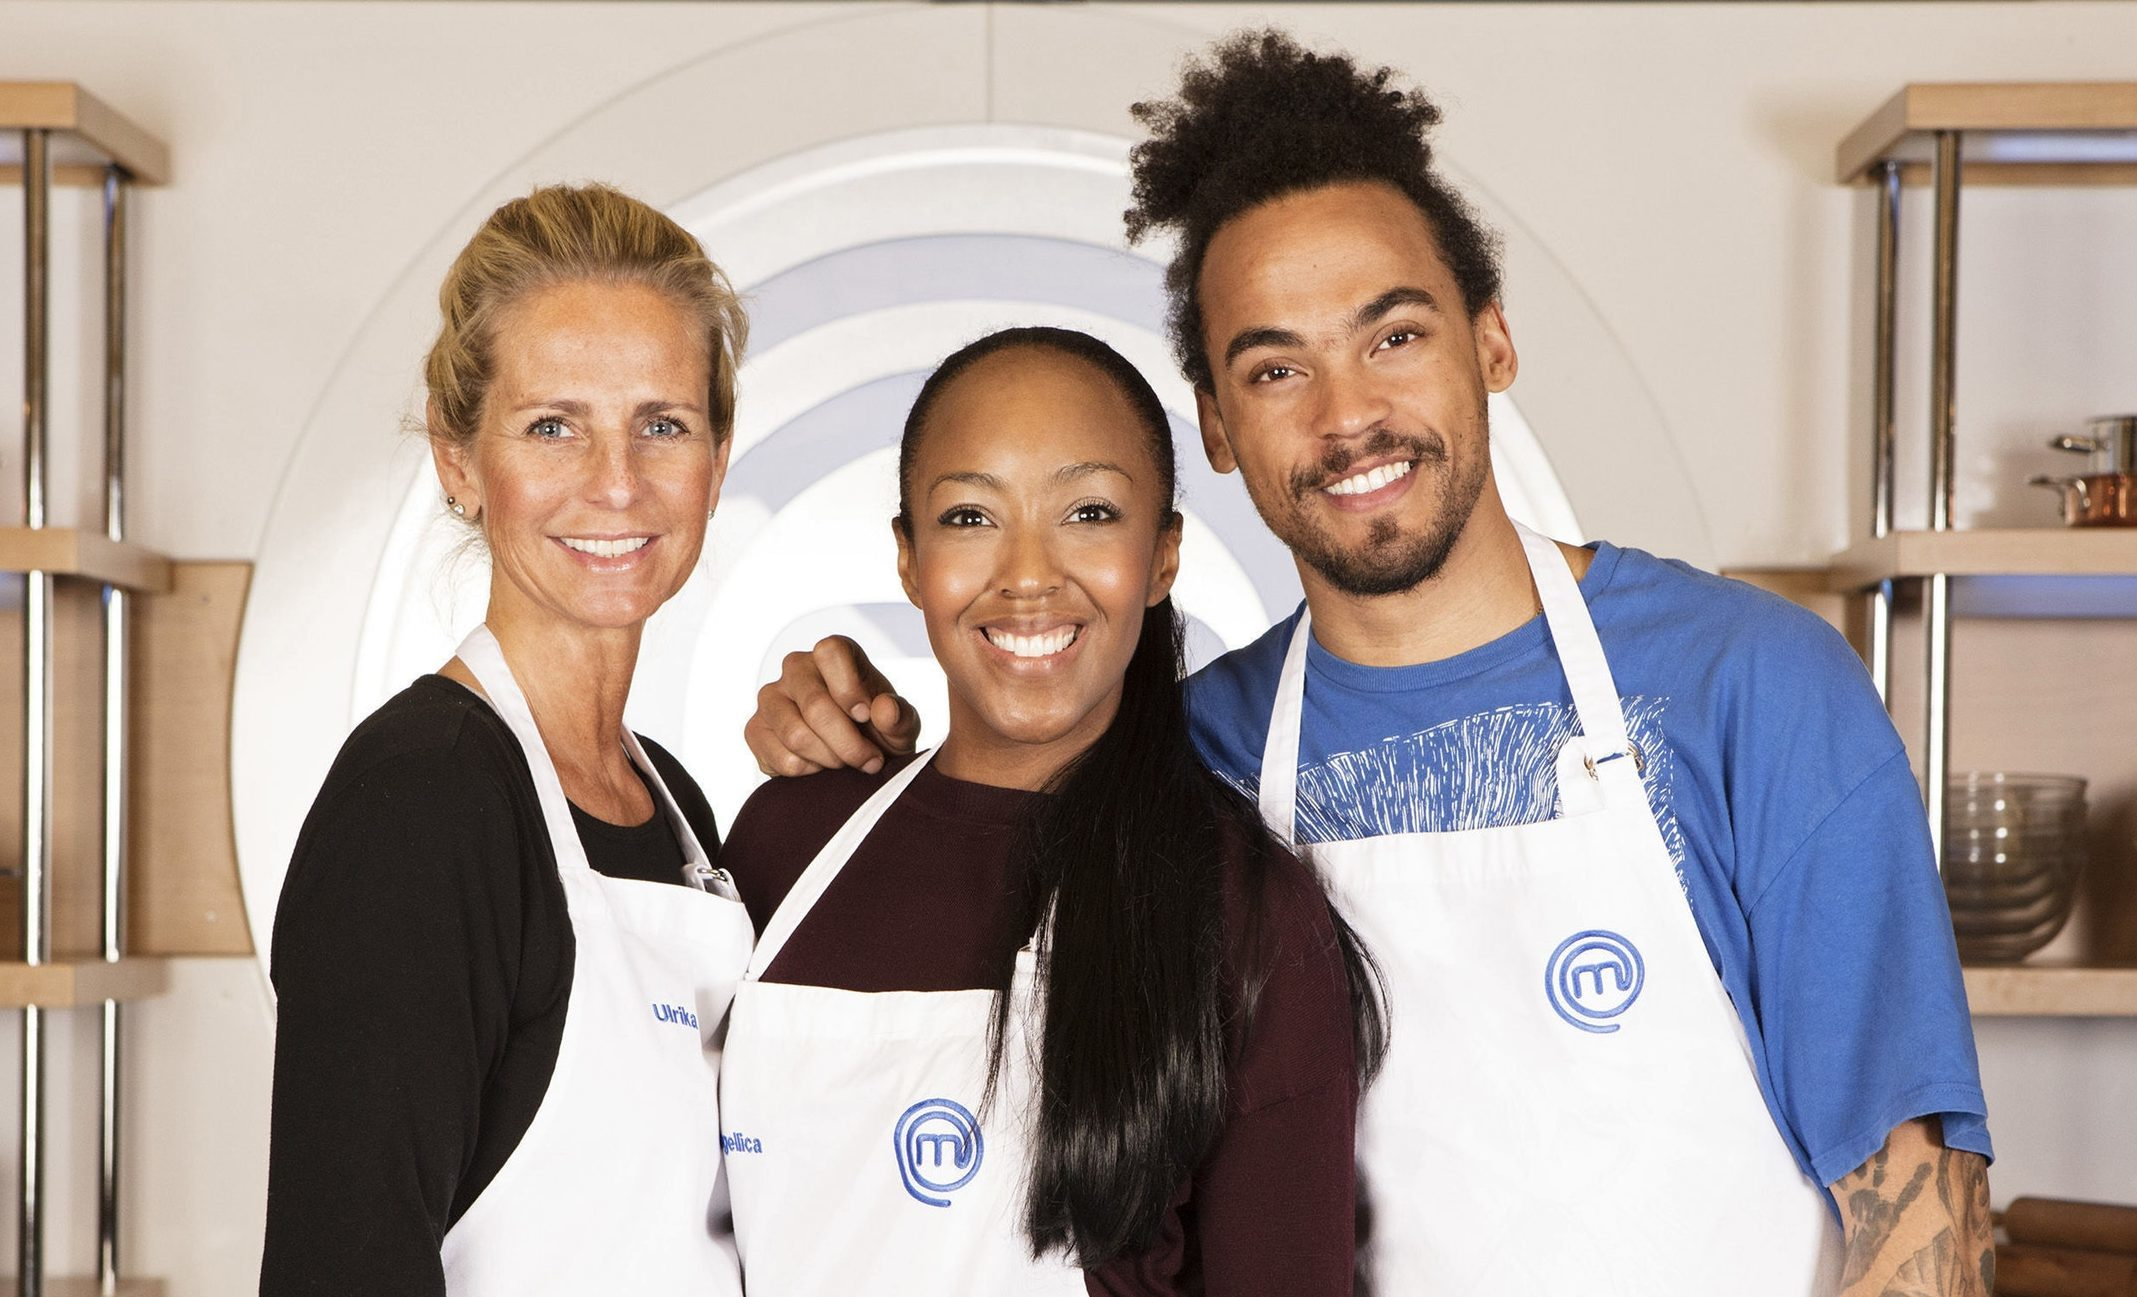 Ulrika Jonsson, Angellica Bell and Dev Griffin will go head-to-head in Friday's finale (BBC/PA)